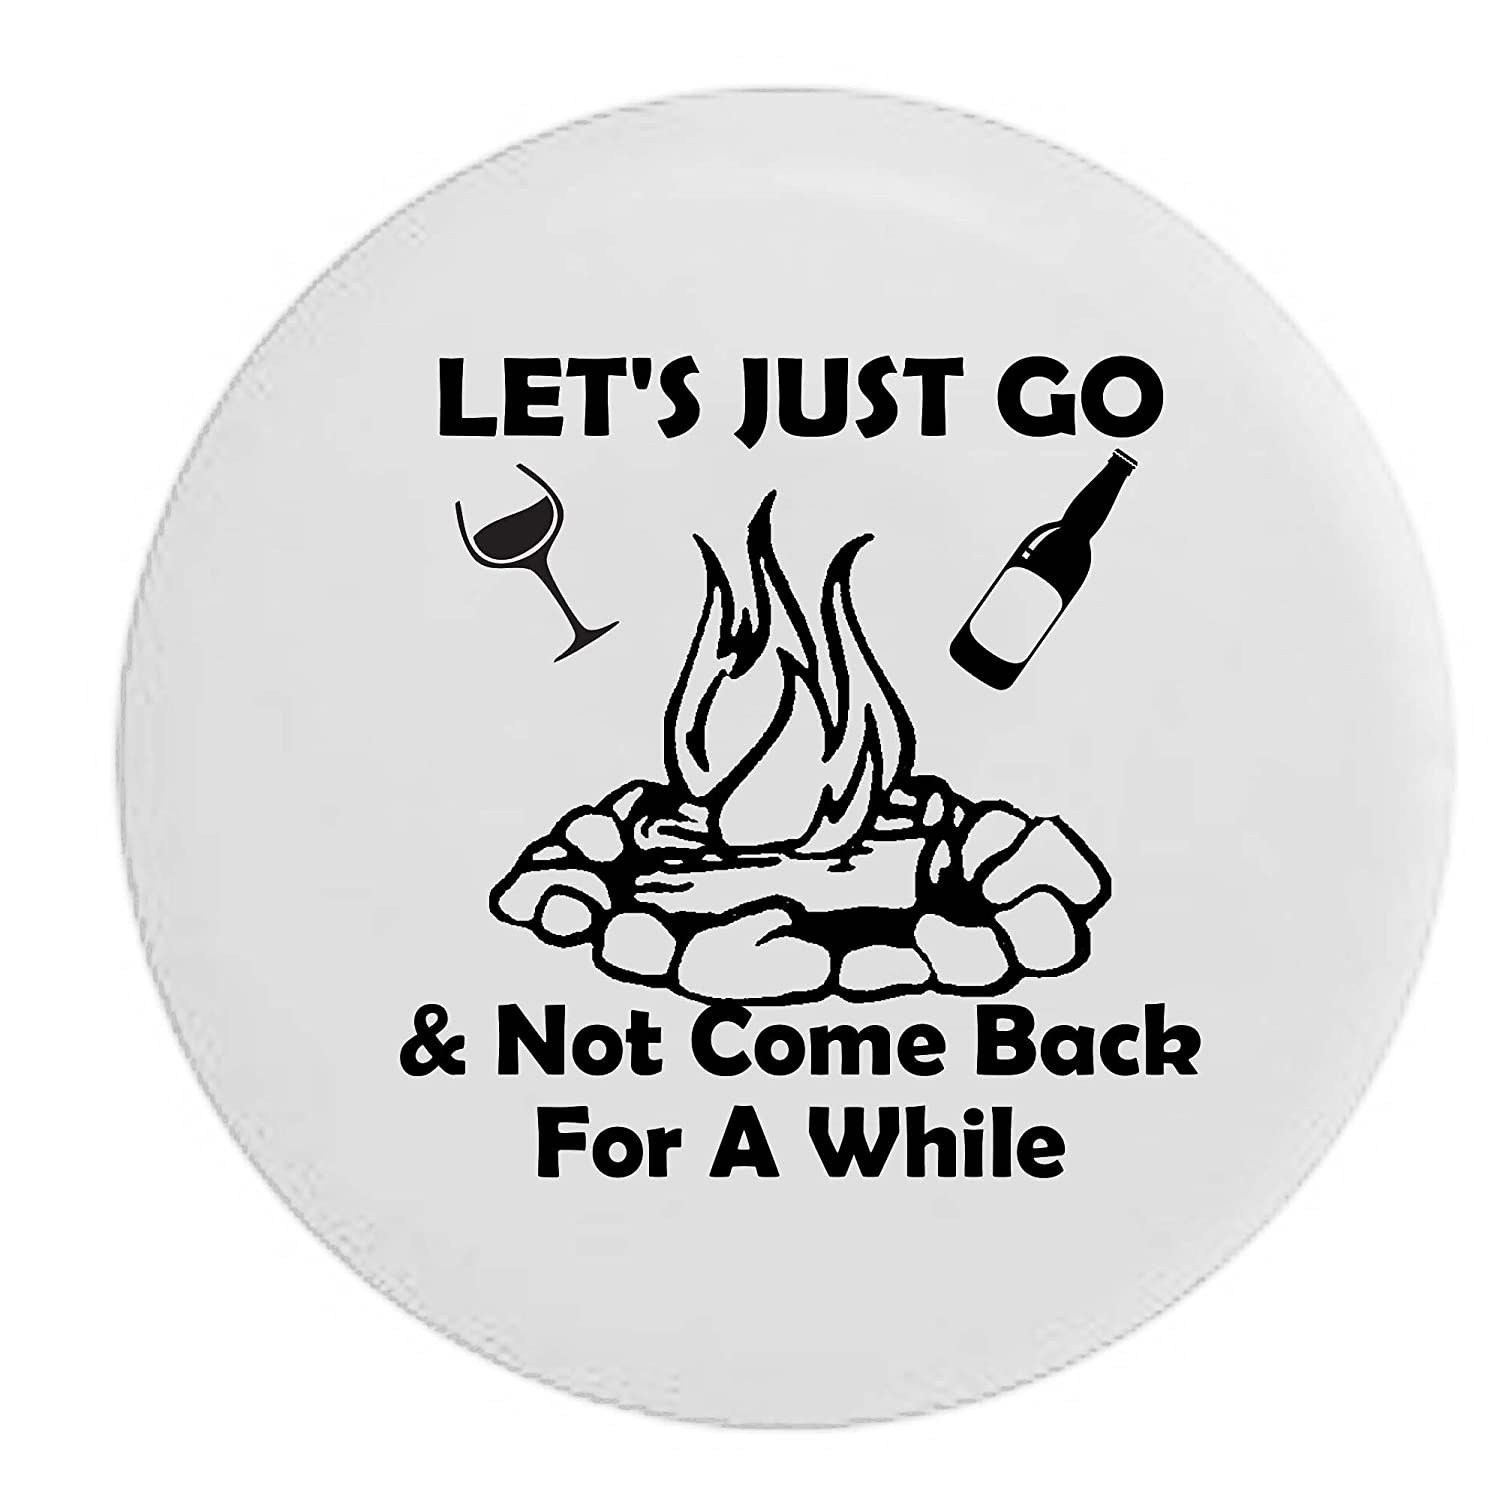 Lets Just Go /& Not Come Back for a While Campfire Travel Drinking Spare Tire Cover OEM Vinyl Black 27.5 in Pike Outdoors Stealth